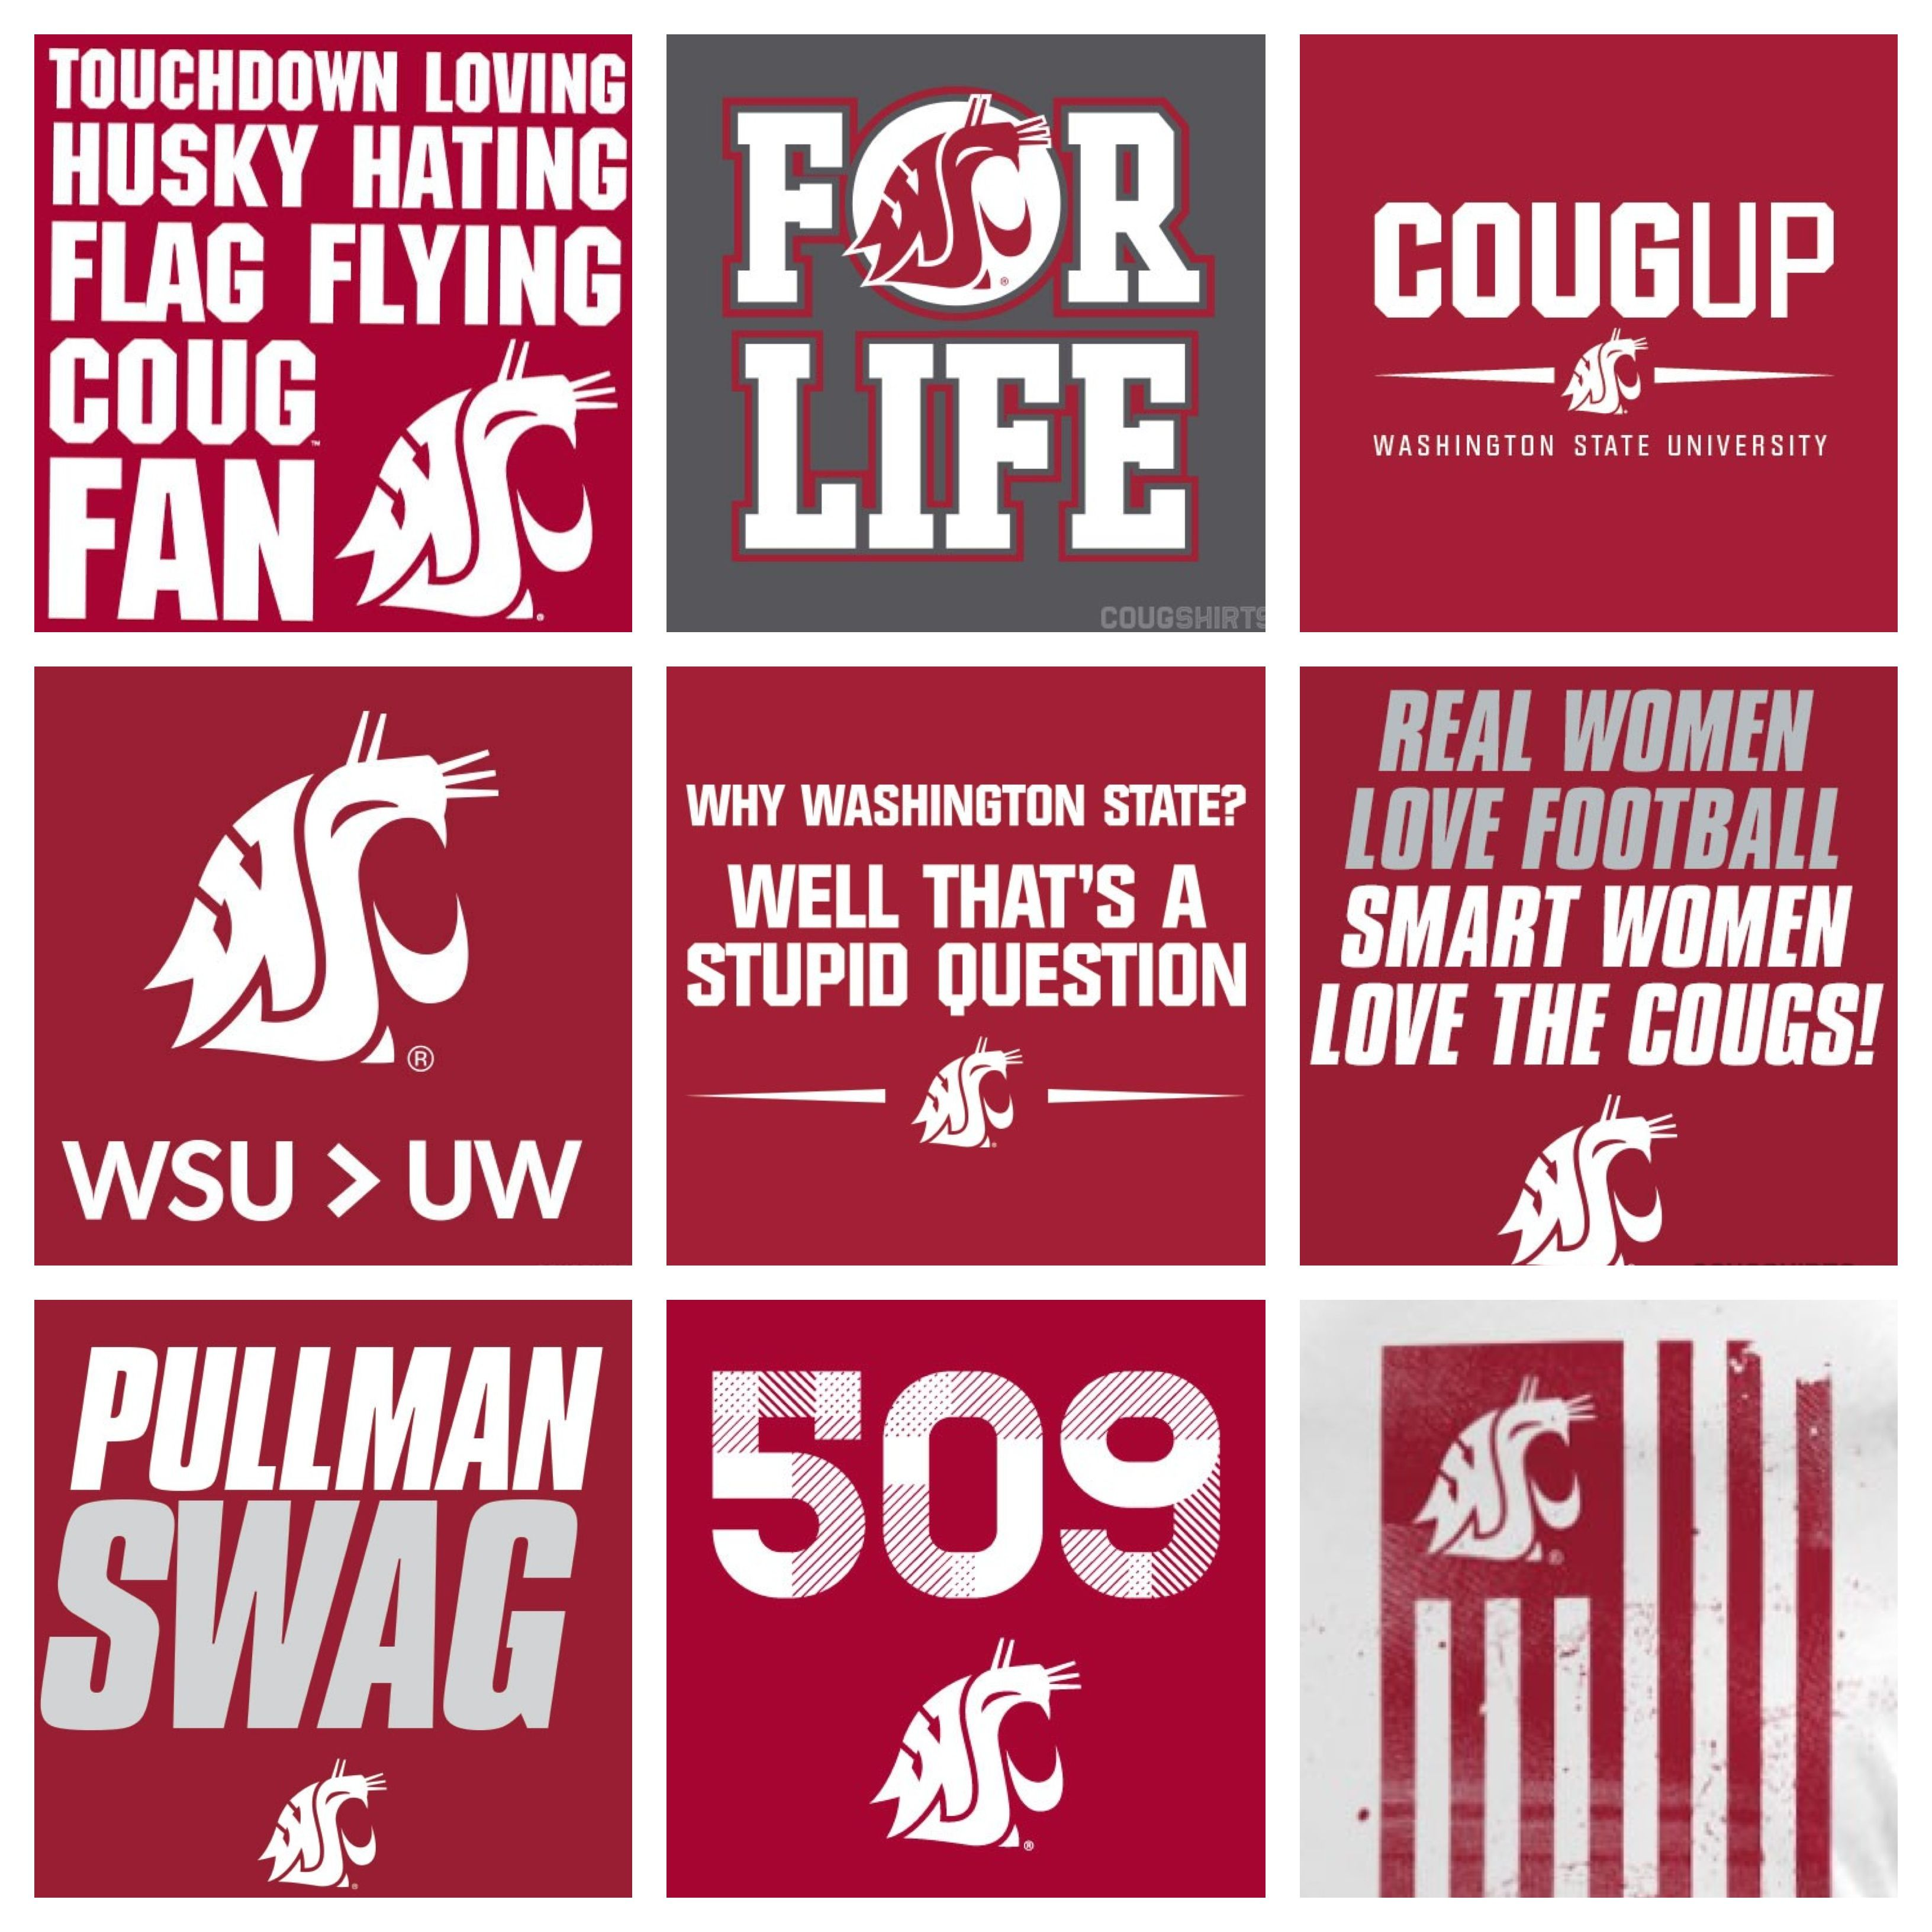 Pin By Cougshirts On Cougshirts Wsu Wsu Cougars Wsu Cougs